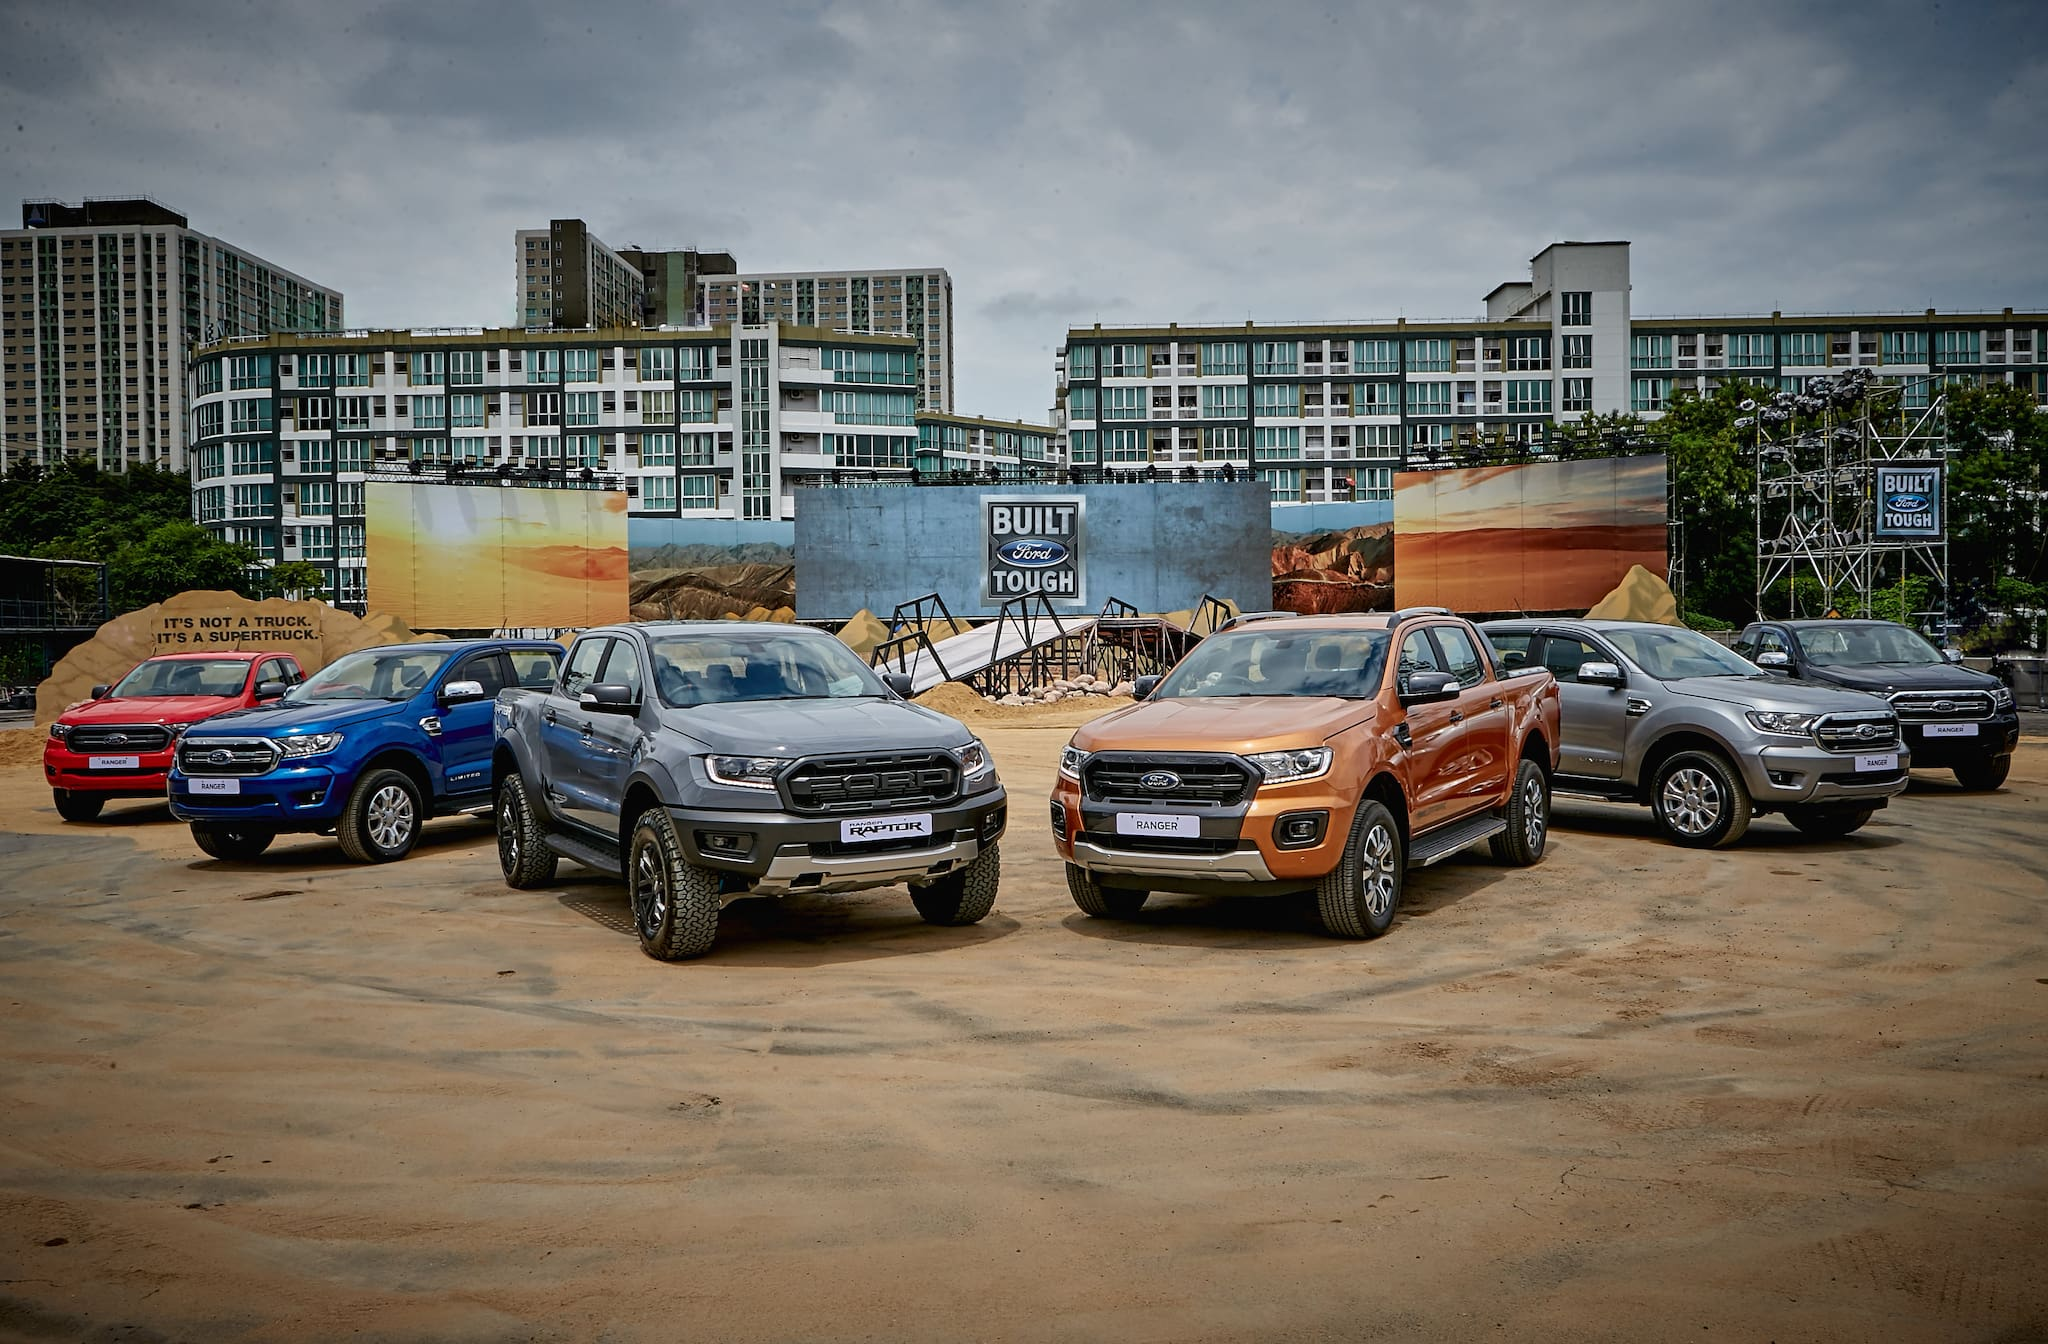 Ford Ranger Delivers Record Asia Pacific Sales in 2018 for 10th Consecutive Year